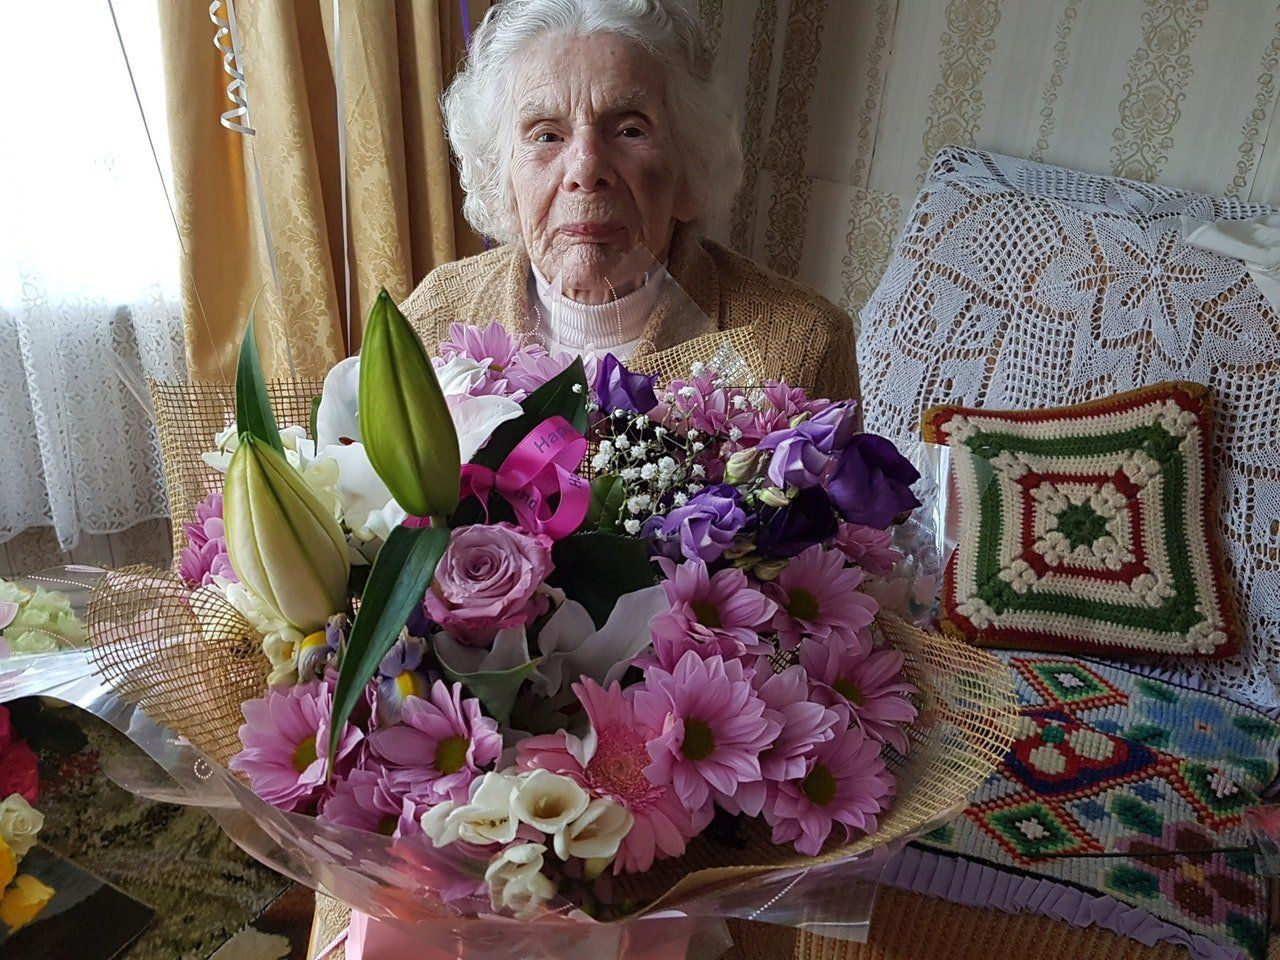 Man Appears In Court Over Death Of 100-Year-Old Zofija